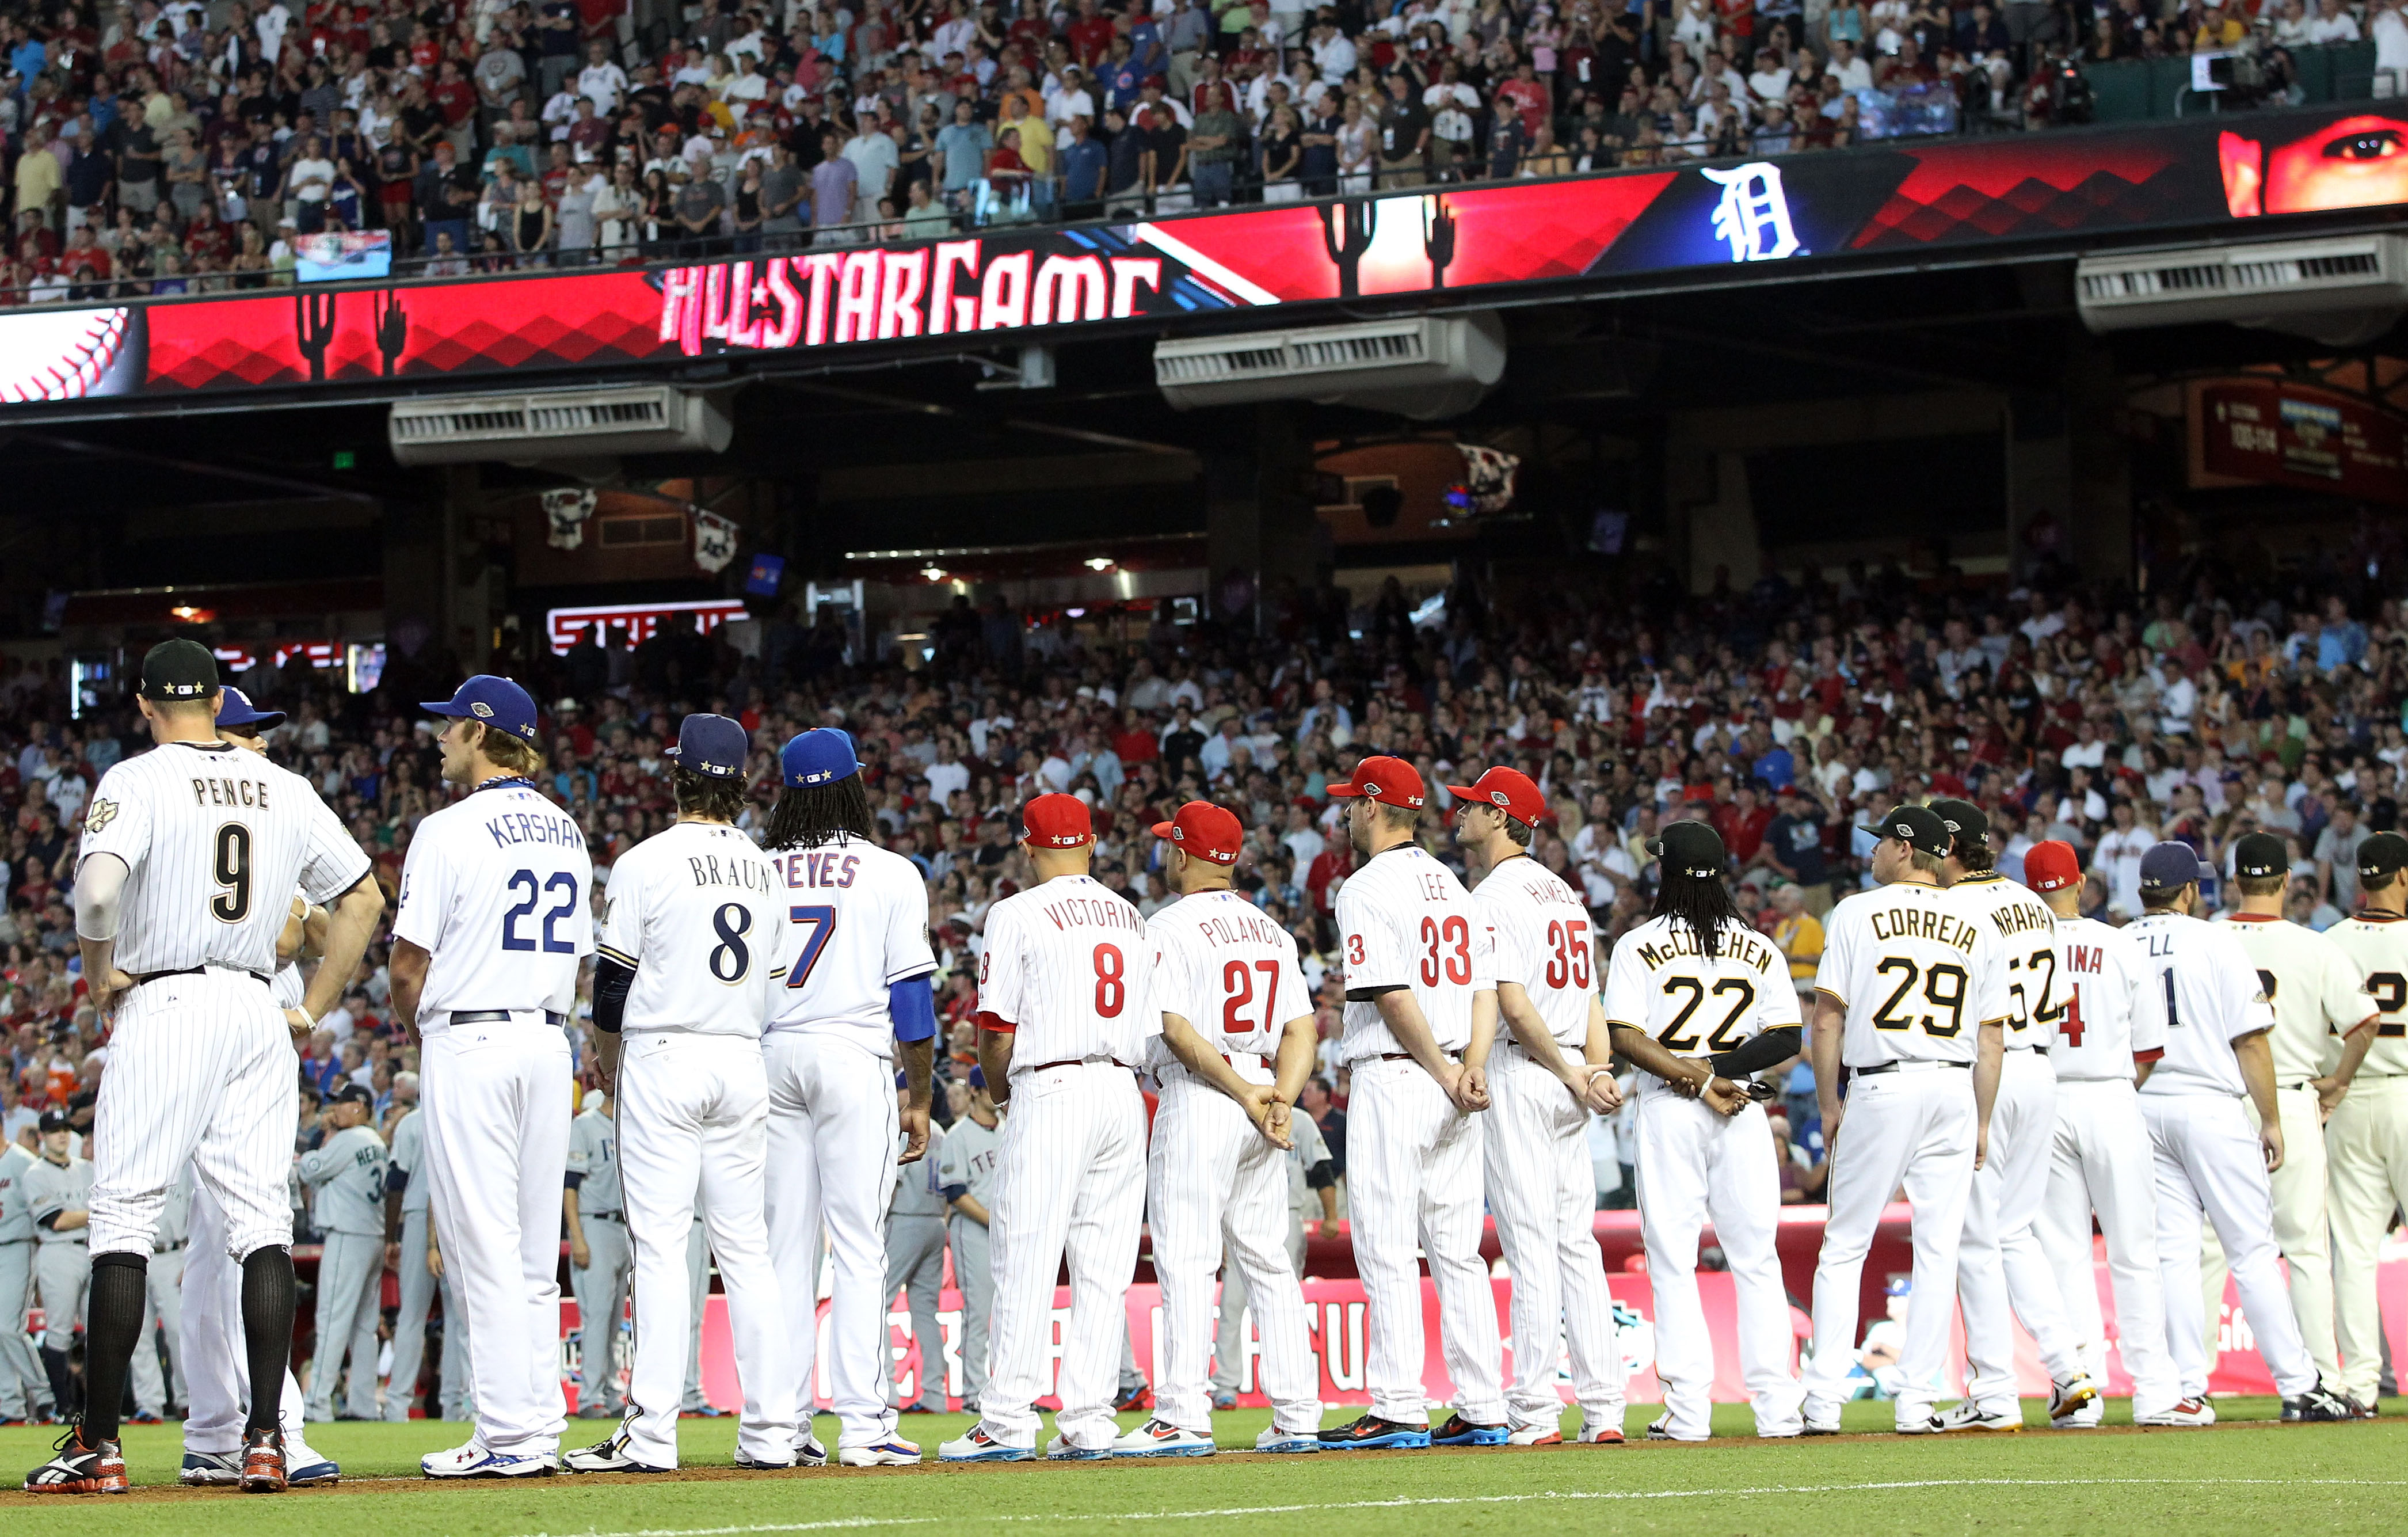 PHOENIX, AZ - JULY 12:  The National League All-Stars stand on the third base line before the start of the 82nd MLB All-Star Game at Chase Field on July 12, 2011 in Phoenix, Arizona.  (Photo by Christian Petersen/Getty Images)